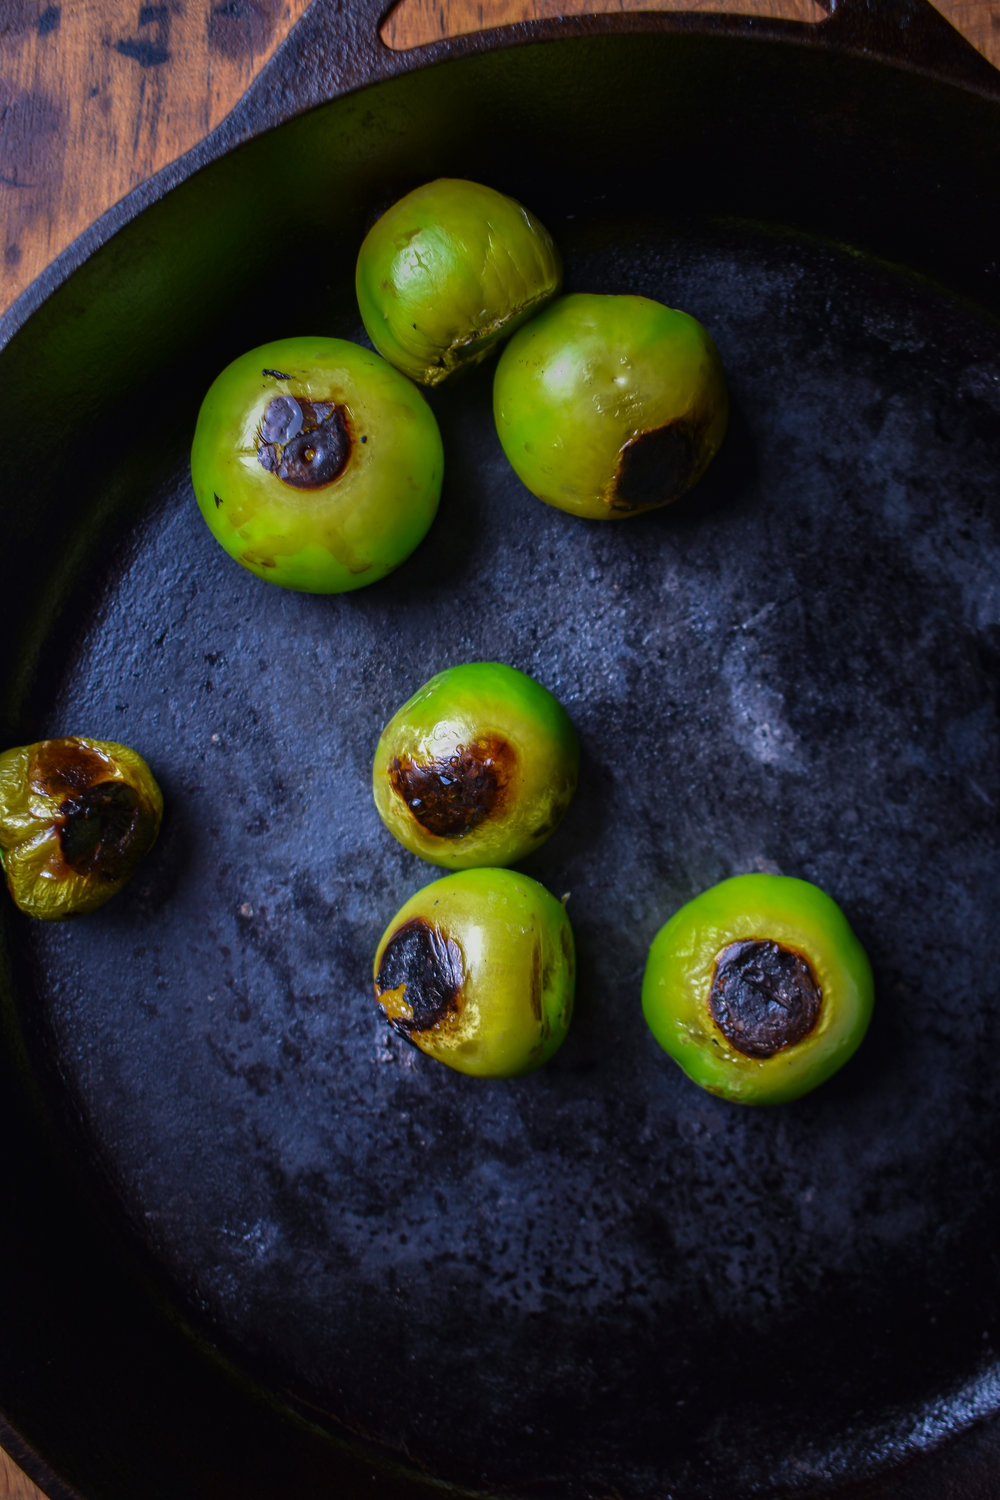 5. Once the potatoes are done, wipe the pan out and then add to medium-high heat dry (no oil). After 2 mintues, add tomatillos and cook until charred. Usually about 2-3 minutes and rotate. I do it for about 8-10 minutes until most sides are charred.